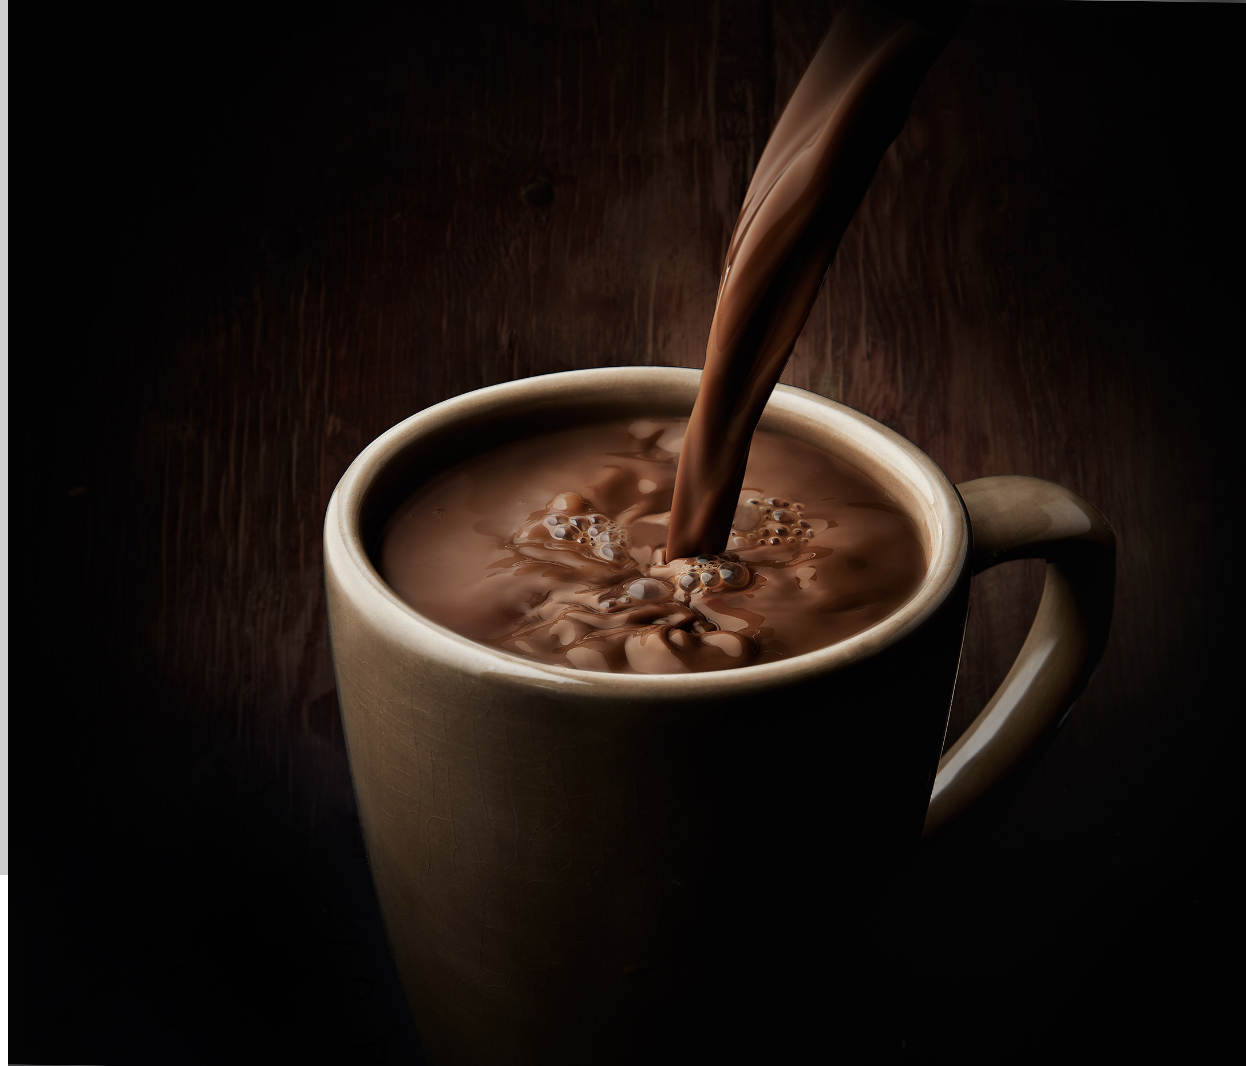 sue tallon food photography, advertising food product photographer, food photography studio san francisco, mars garden, top food photographer in united states, coffee pour